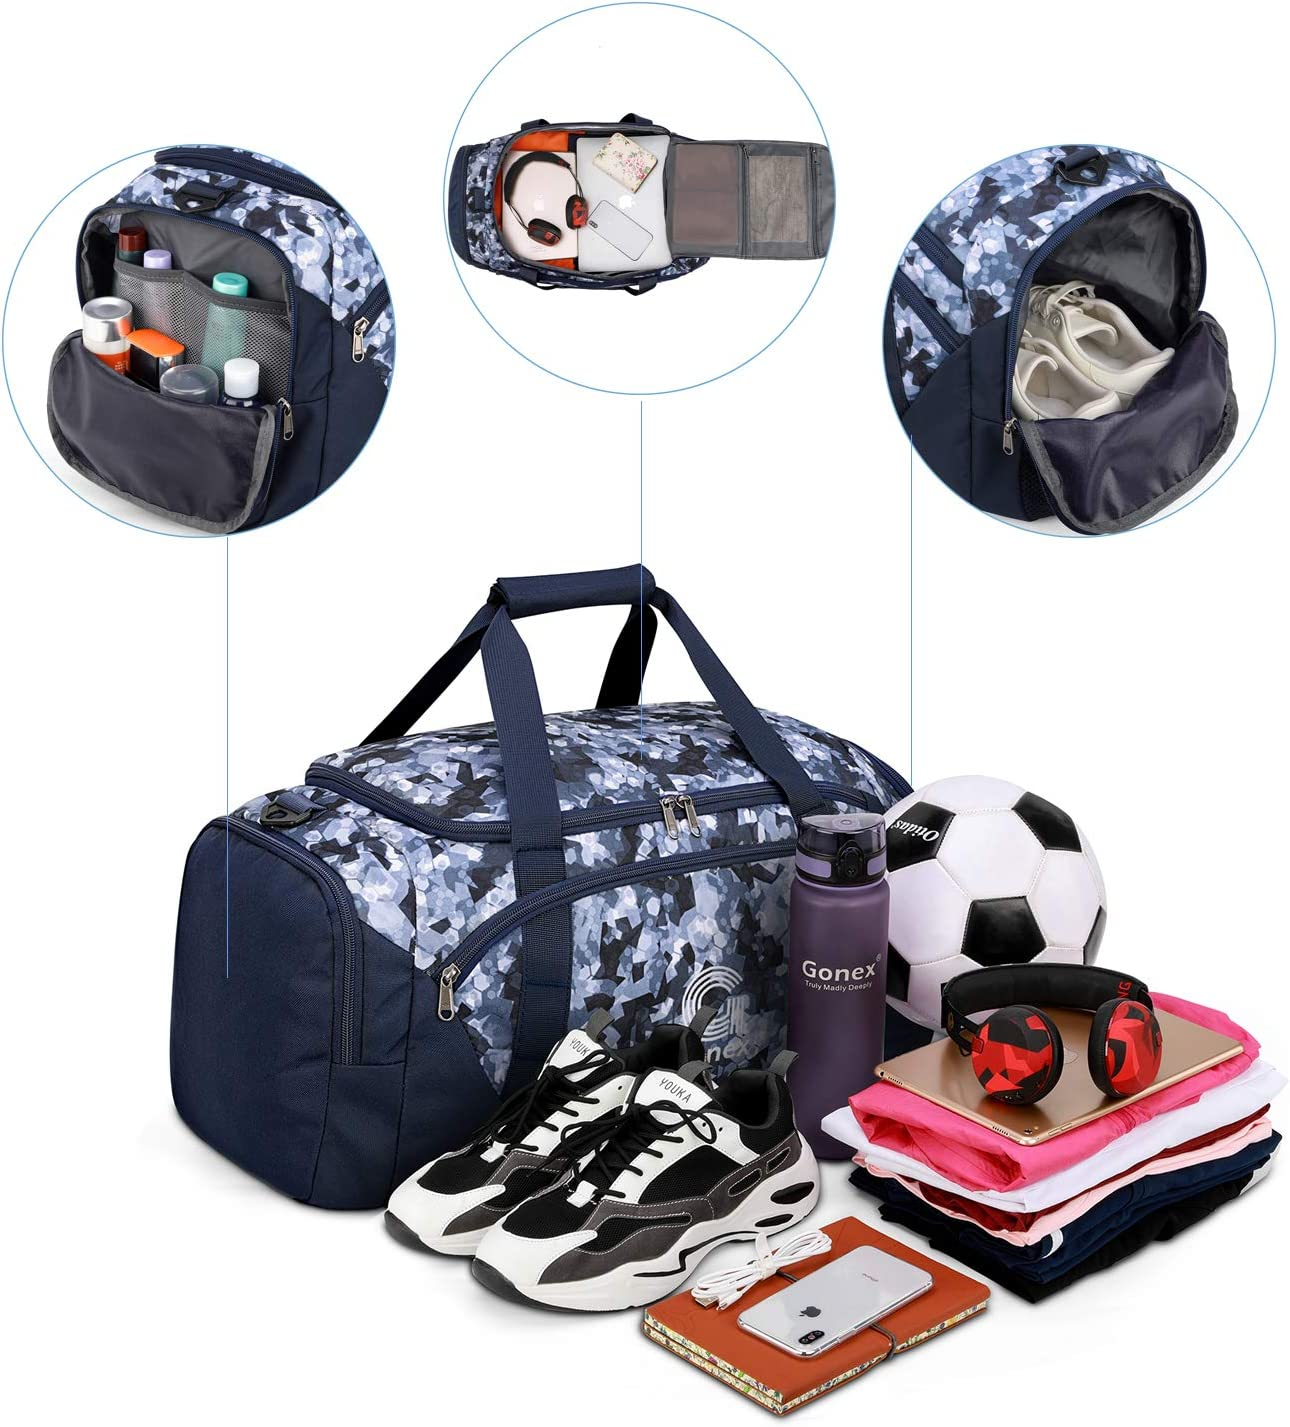 Gonex Stylish Sports Gym Bag with Shoe Compartment and Waterproof Wet Pocket 40L Travel Duffle Holdall Bag